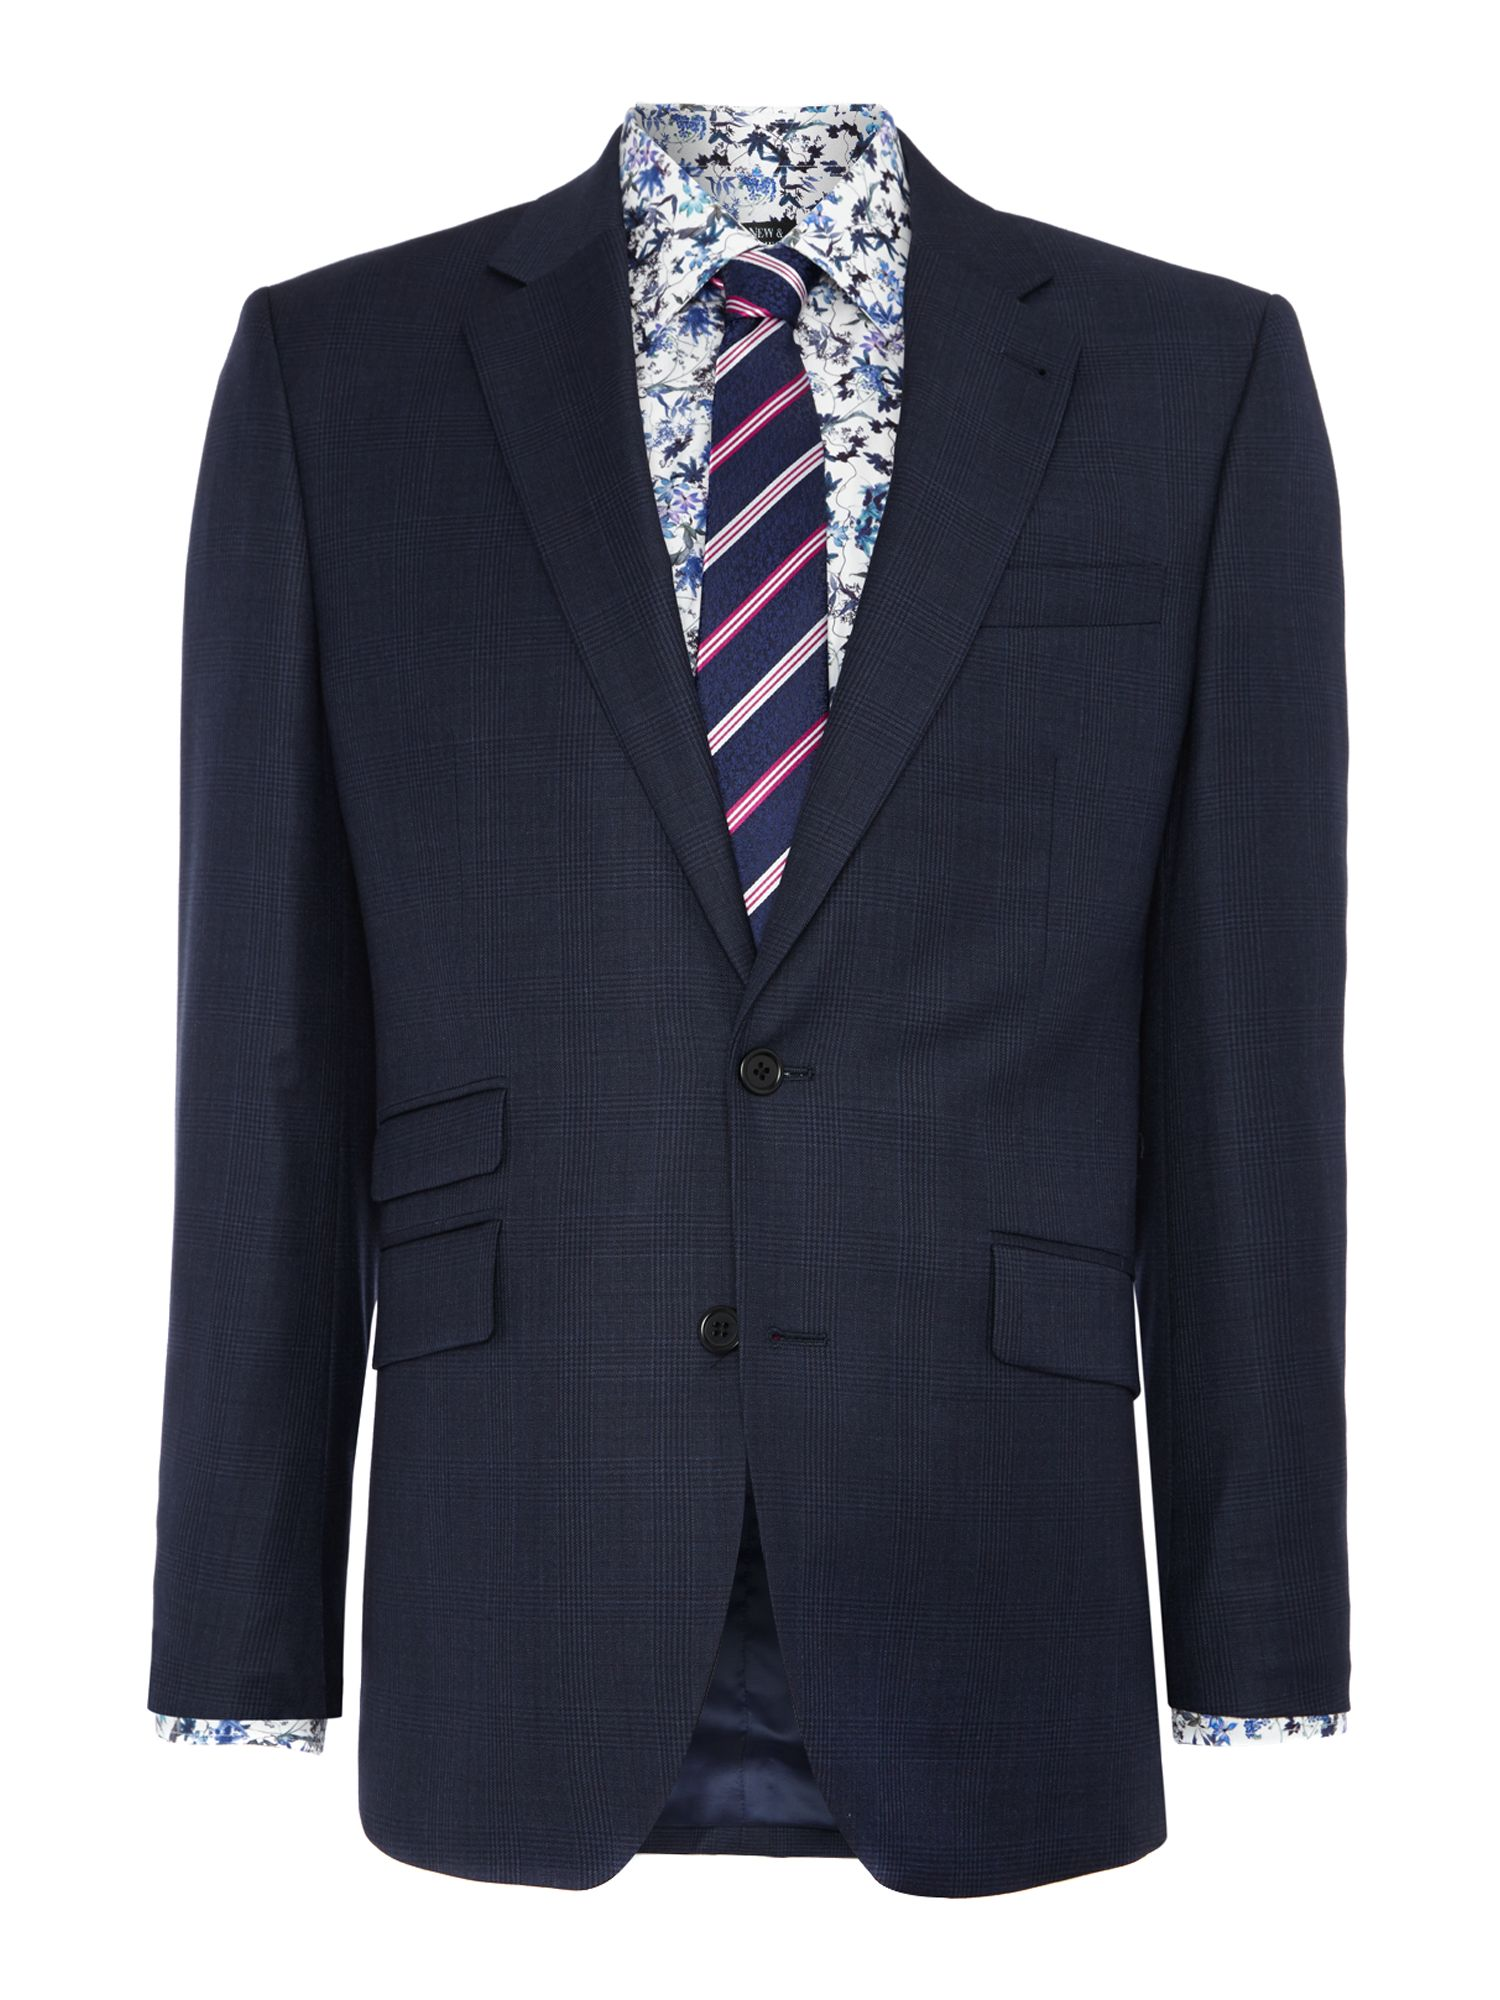 Men's New & Lingwood Pemberley Check Tailored Fit Suit Jacket, Navy